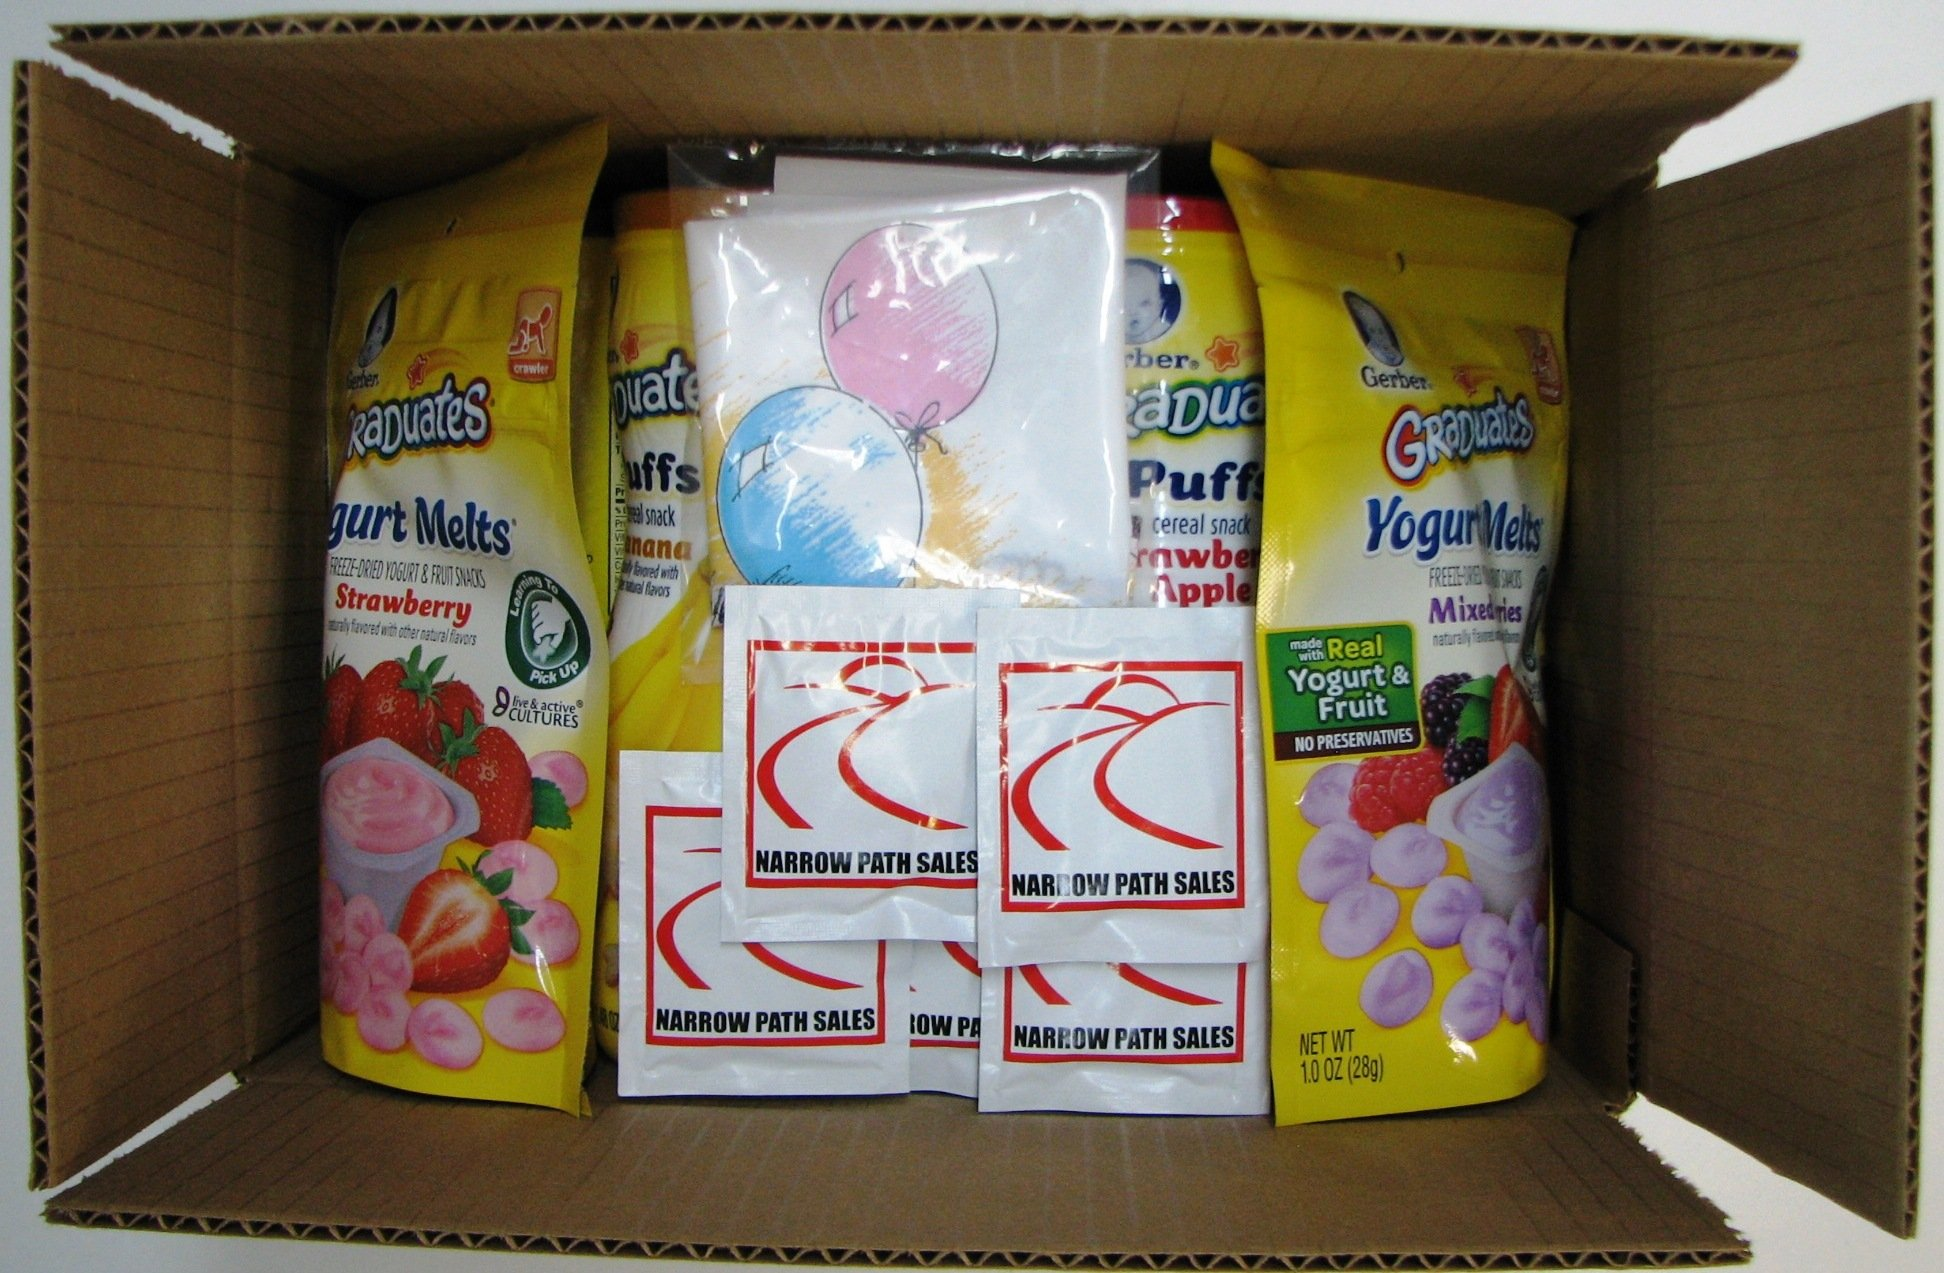 Gerber Graduates Cereal Variety Snack Pack Sampler of Puffs, Yogurt Melts, Lil Crunchies + 1 Snack Catcher; Bundle of 10 by Narrow Path Sales (Image #5)